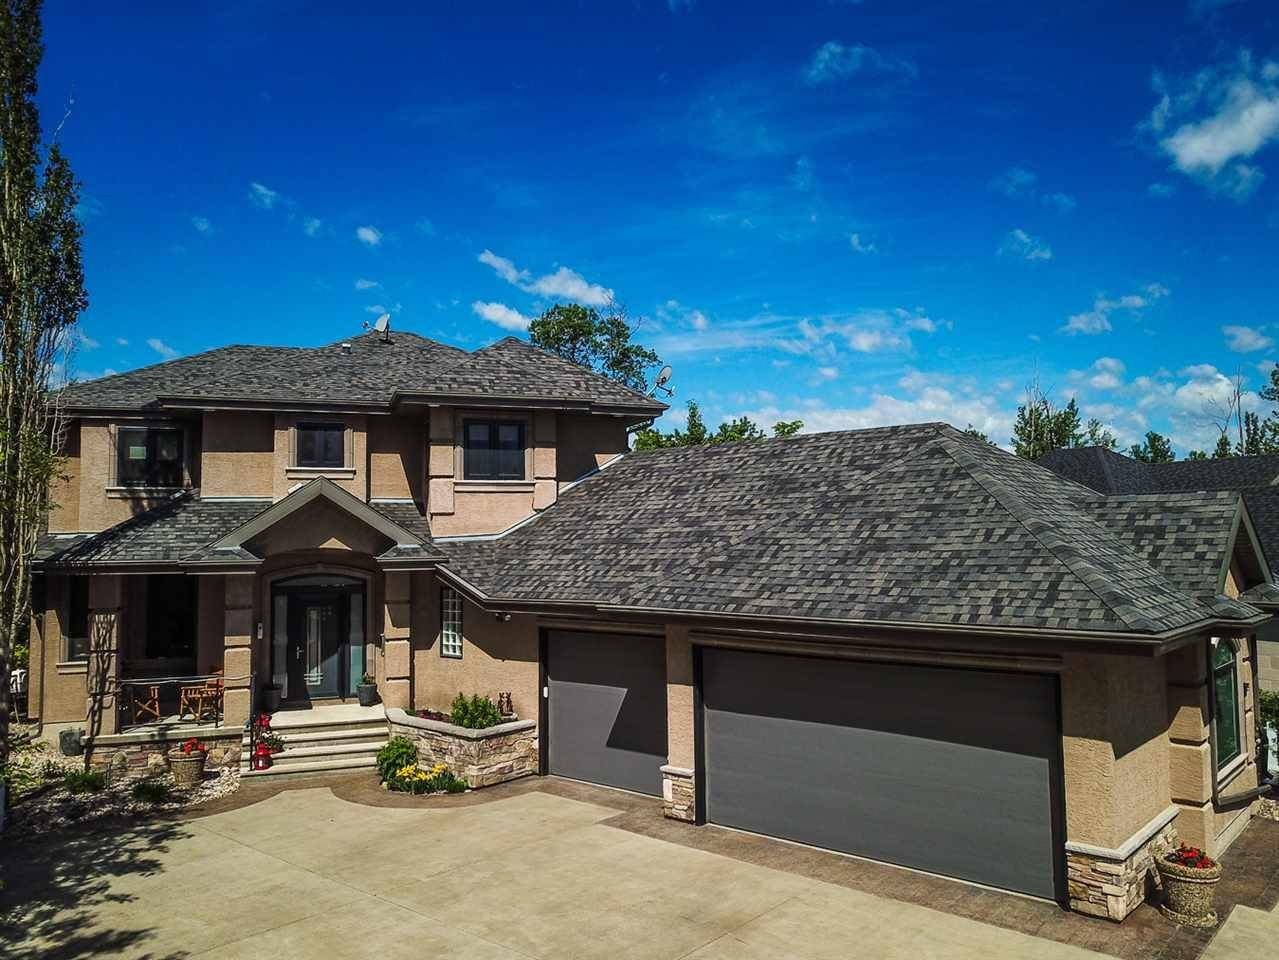 Buliding: 51025 Rge Road, Rural Strathcona County, AB